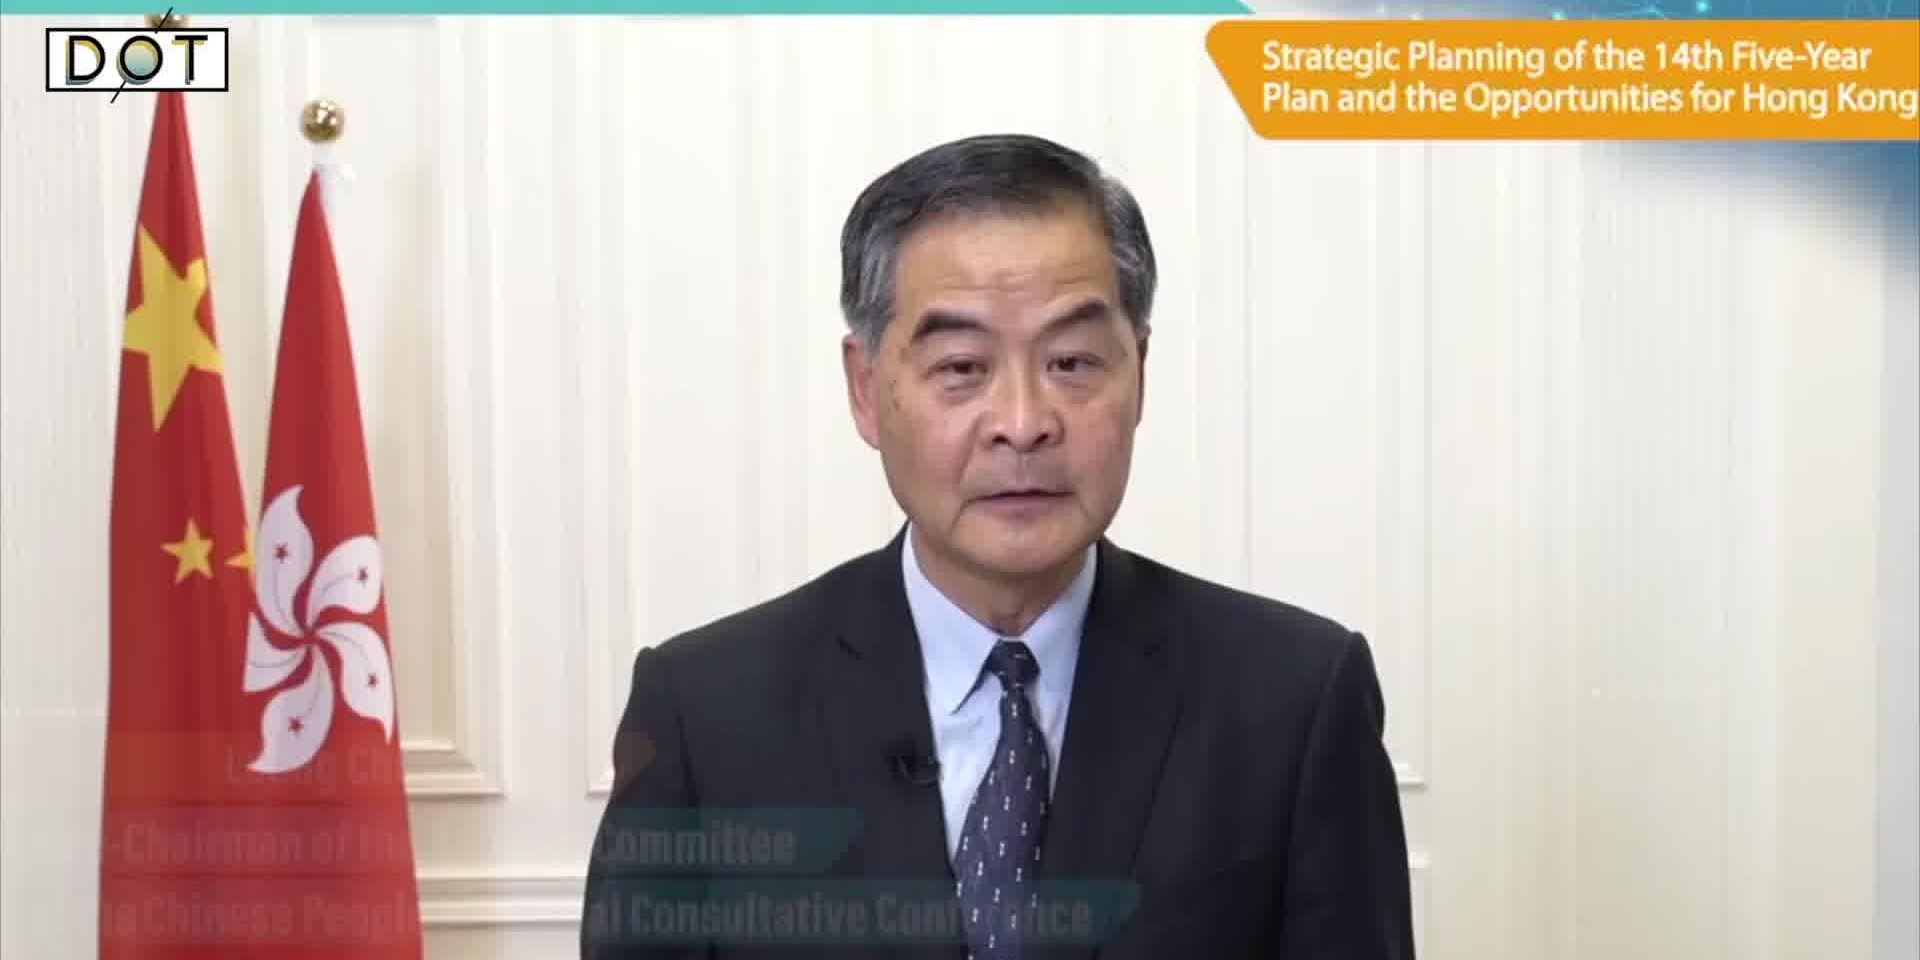 Seminar | Strategical planning of 14th Five-Year Plan and opportunities for HK on March 30